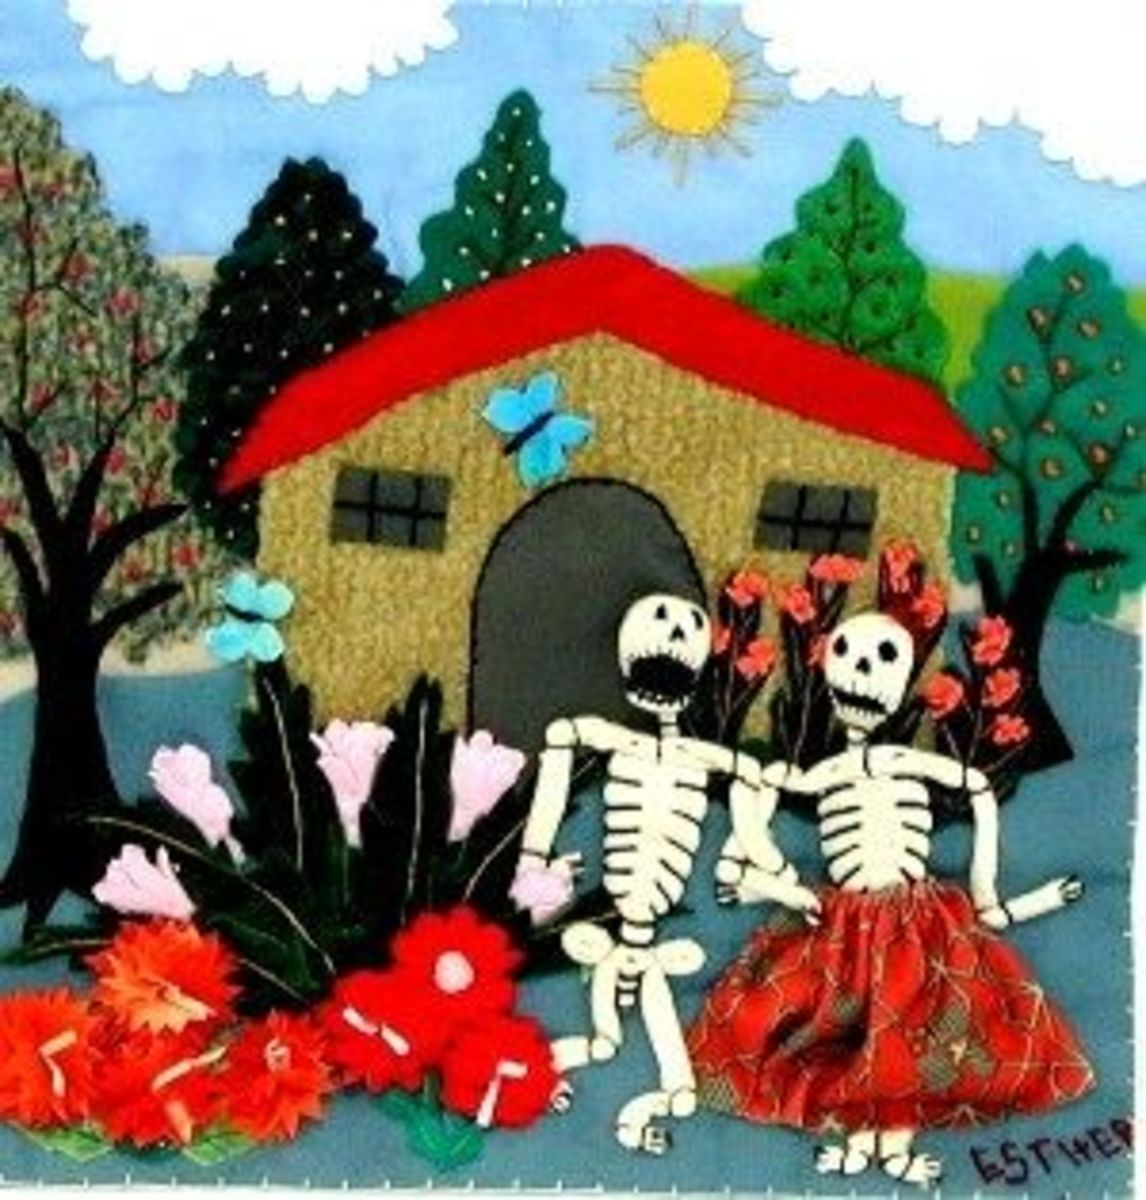 Day of the Dead is a popular theme